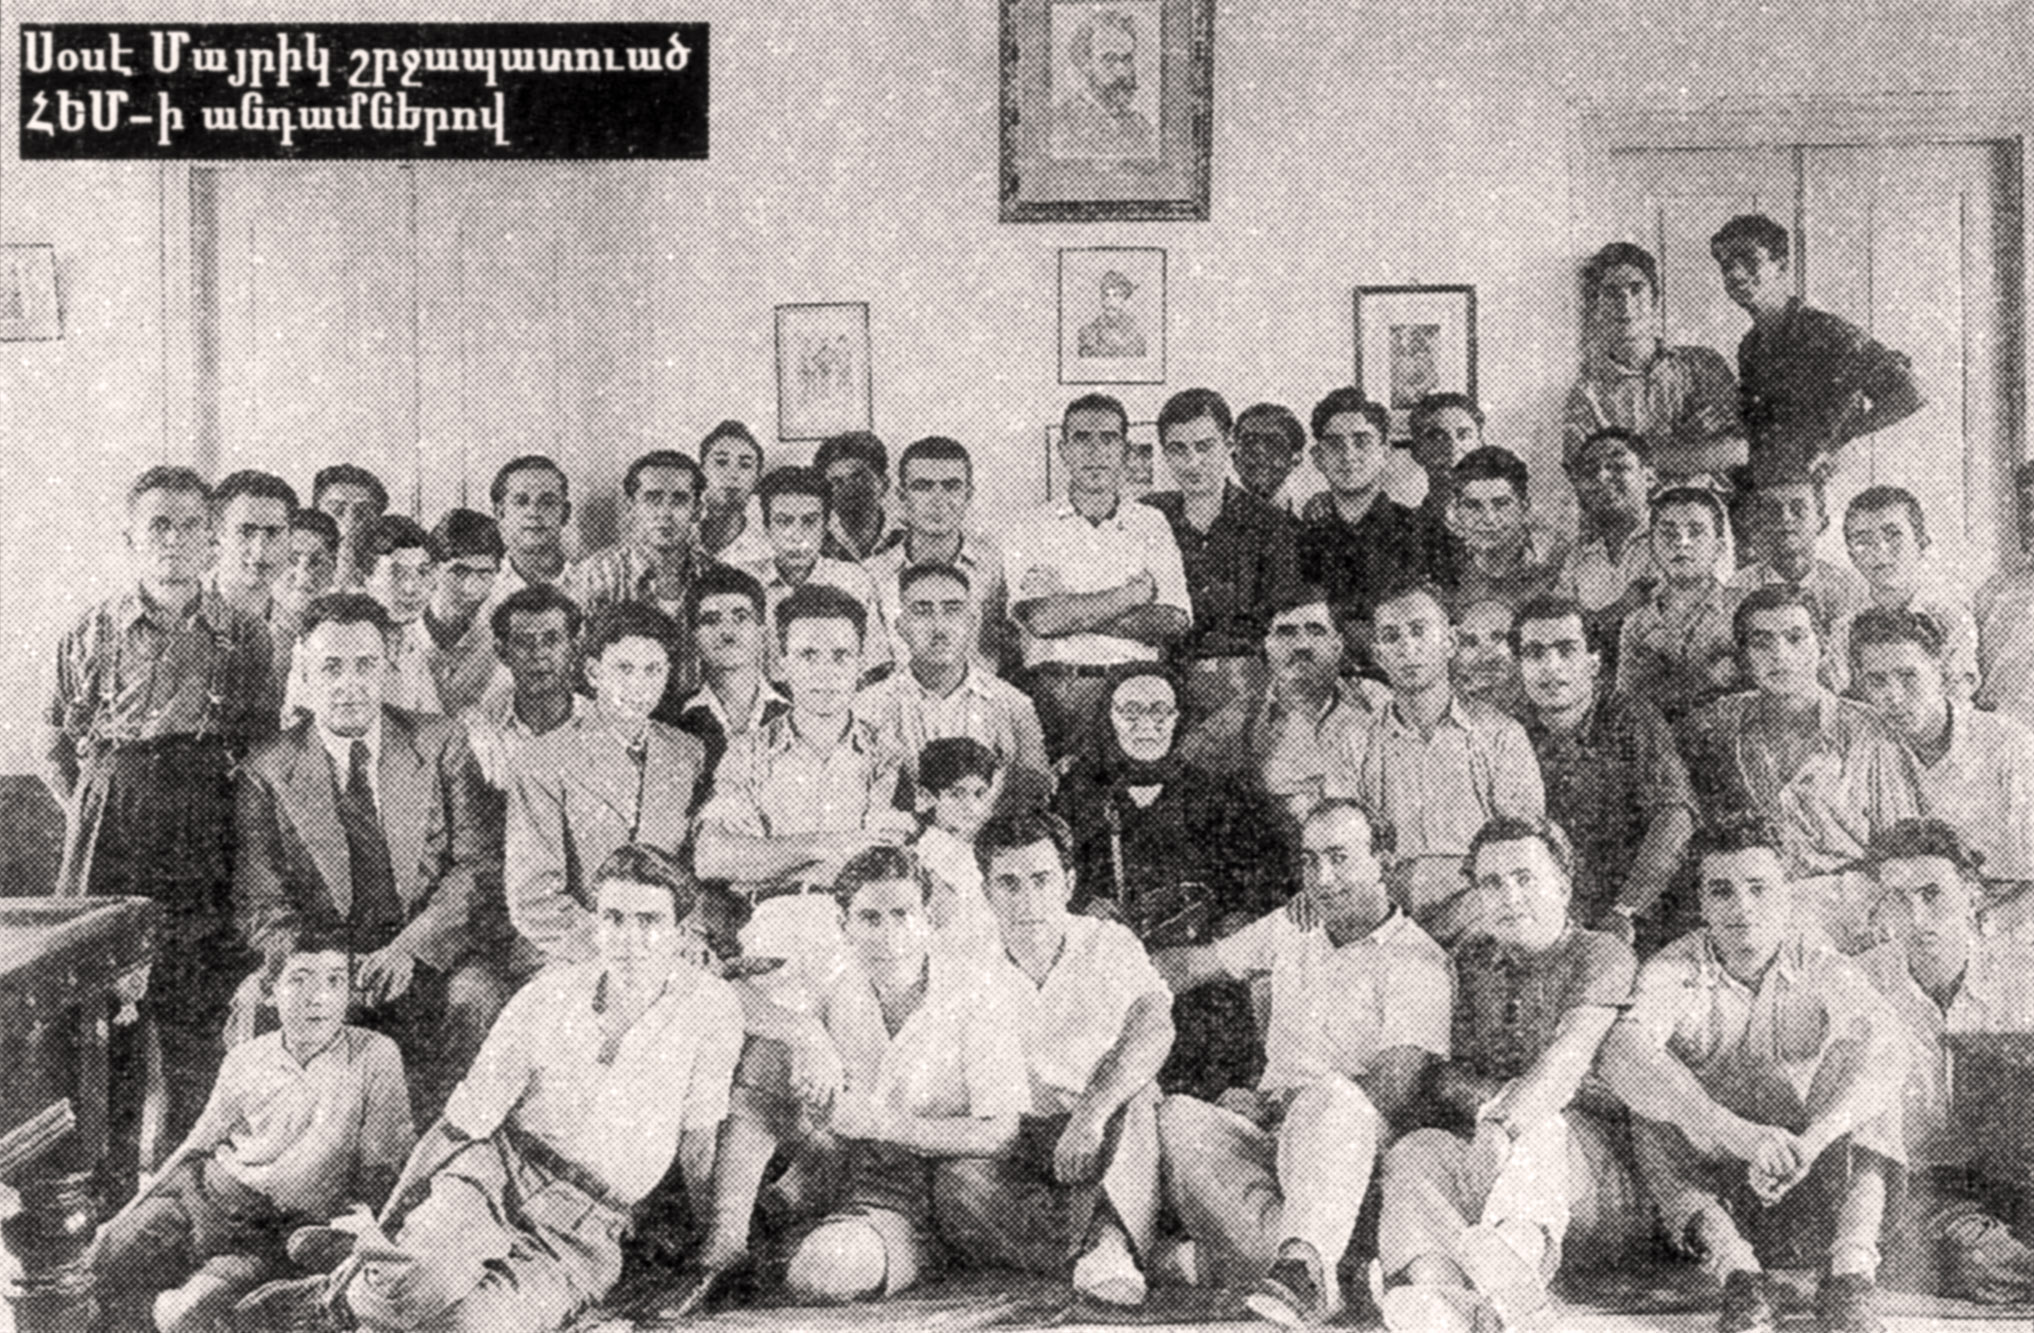 Sose Mayrig meeting with members of an Armenian youth group in Cyprus in 1938